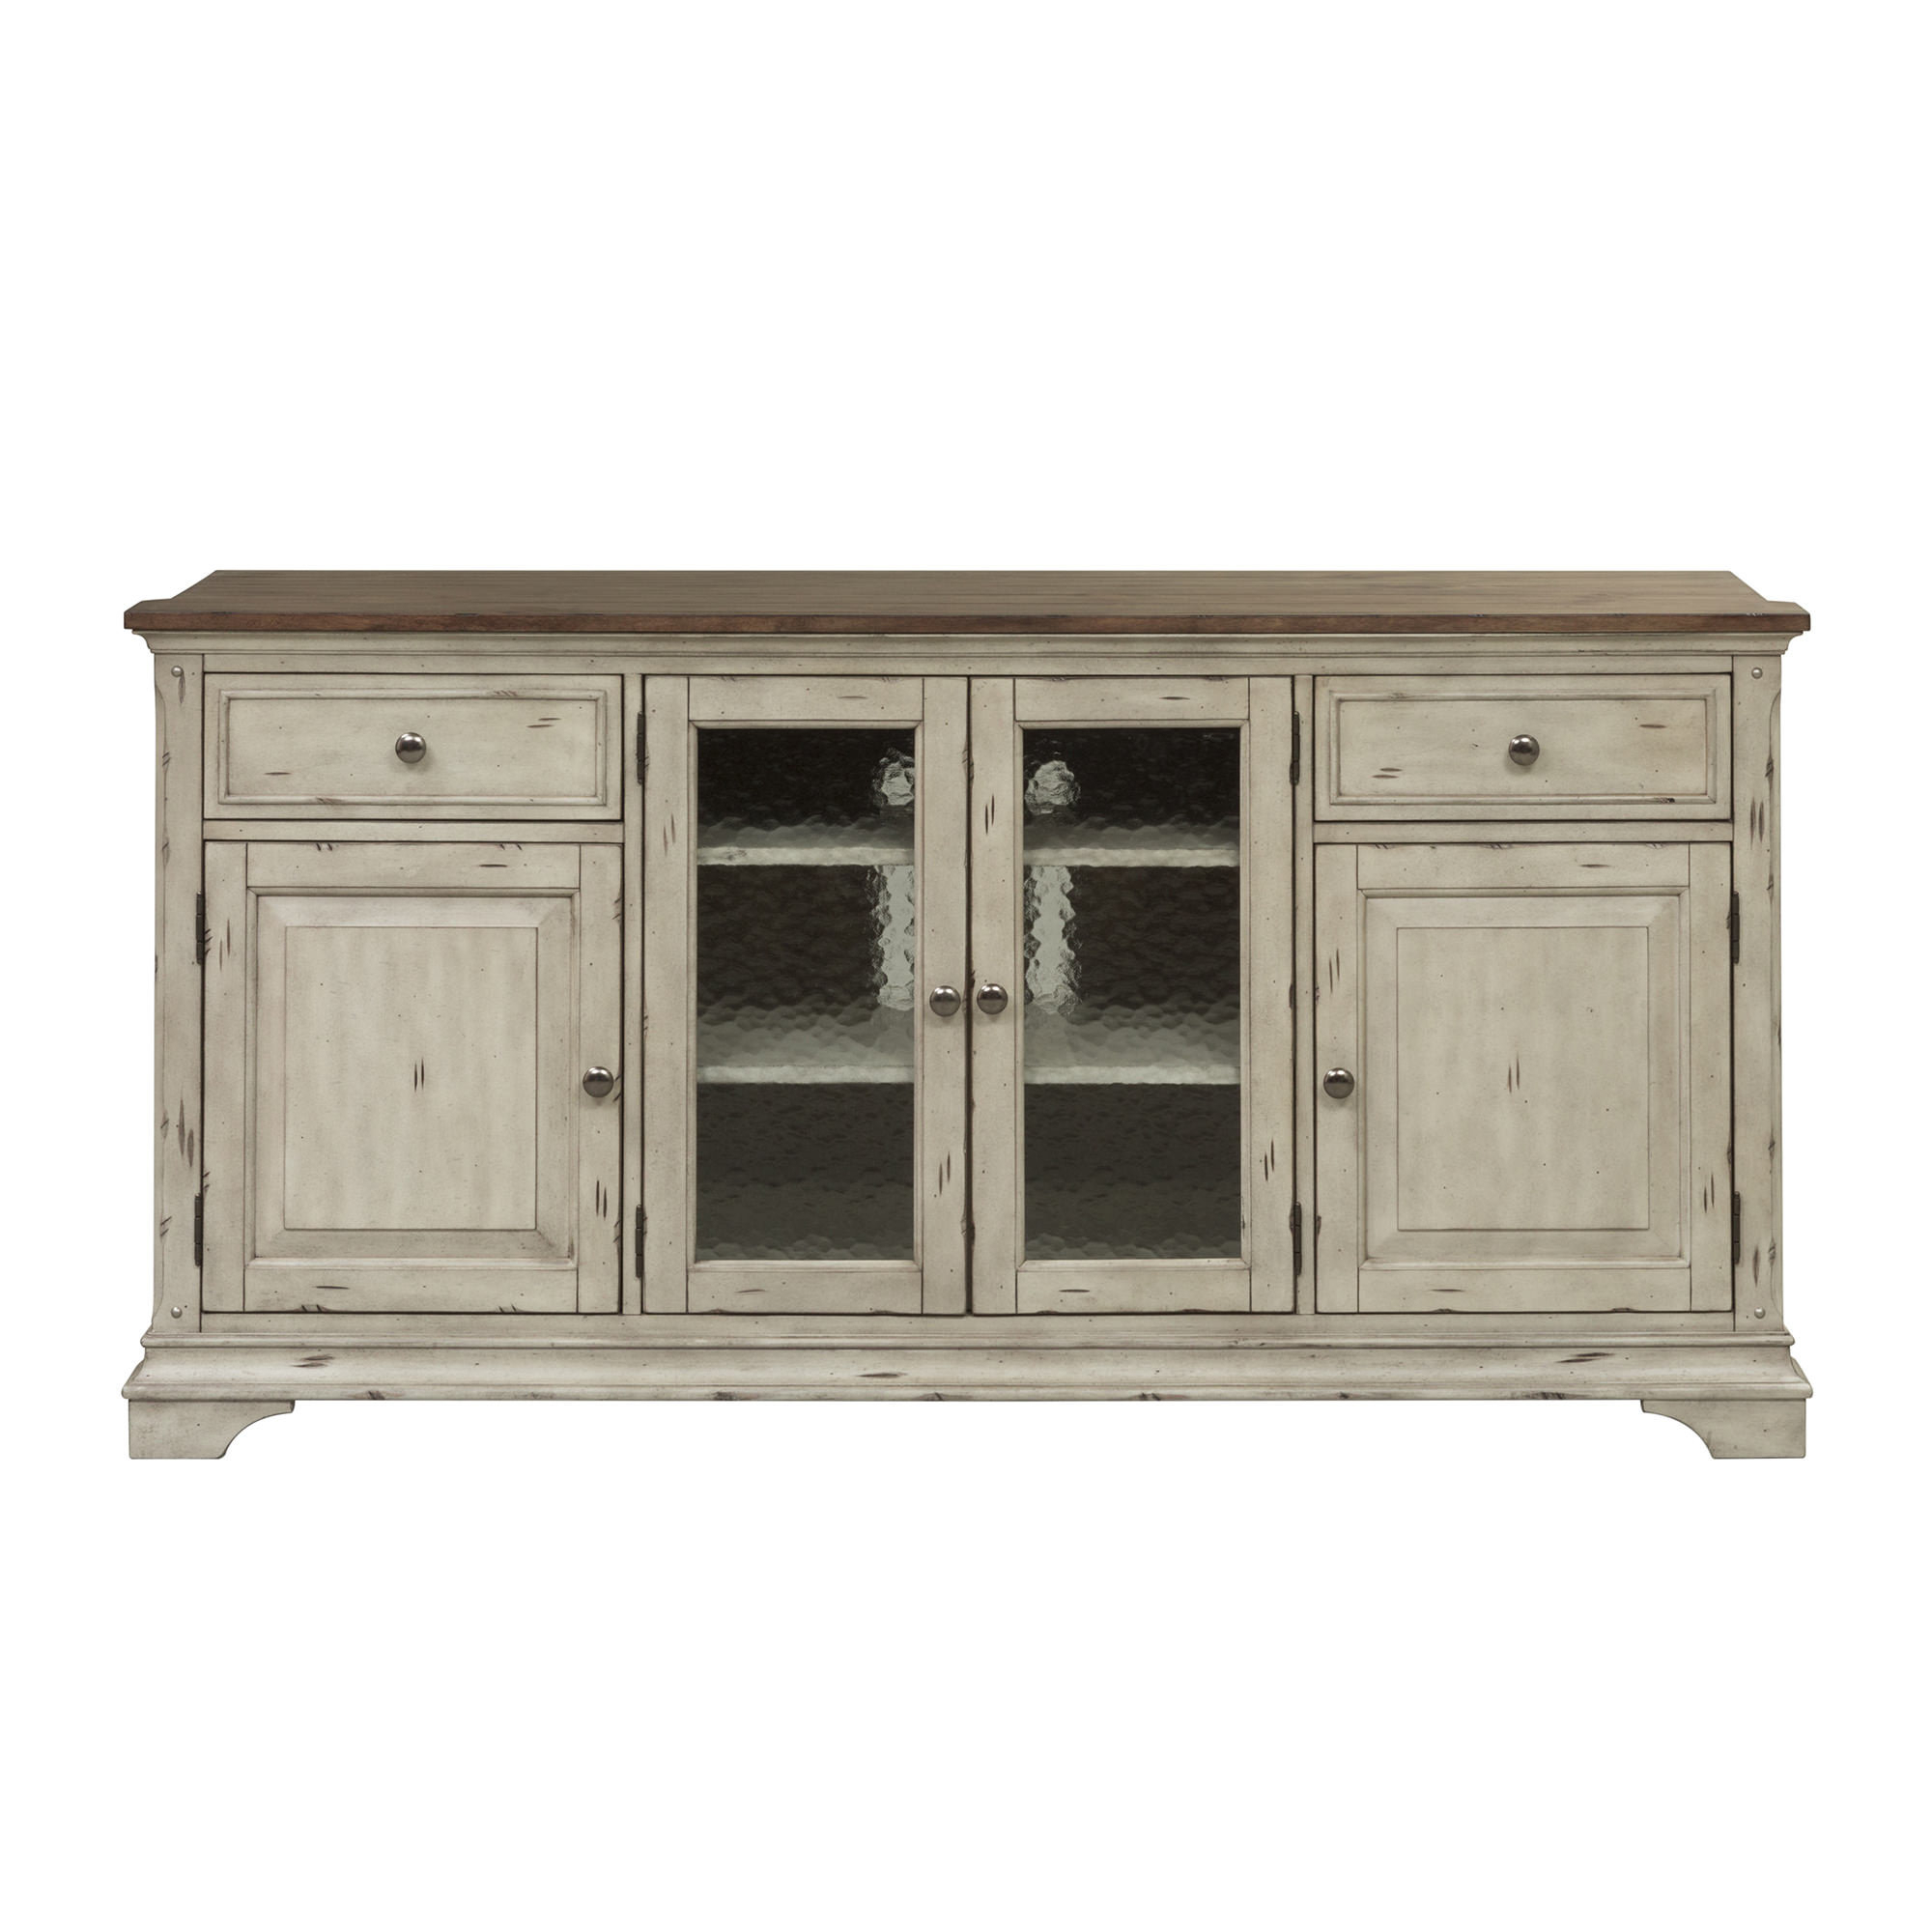 70 Inch Tv Stands | Joss & Main In Bale Rustic Grey 82 Inch Tv Stands (View 5 of 20)